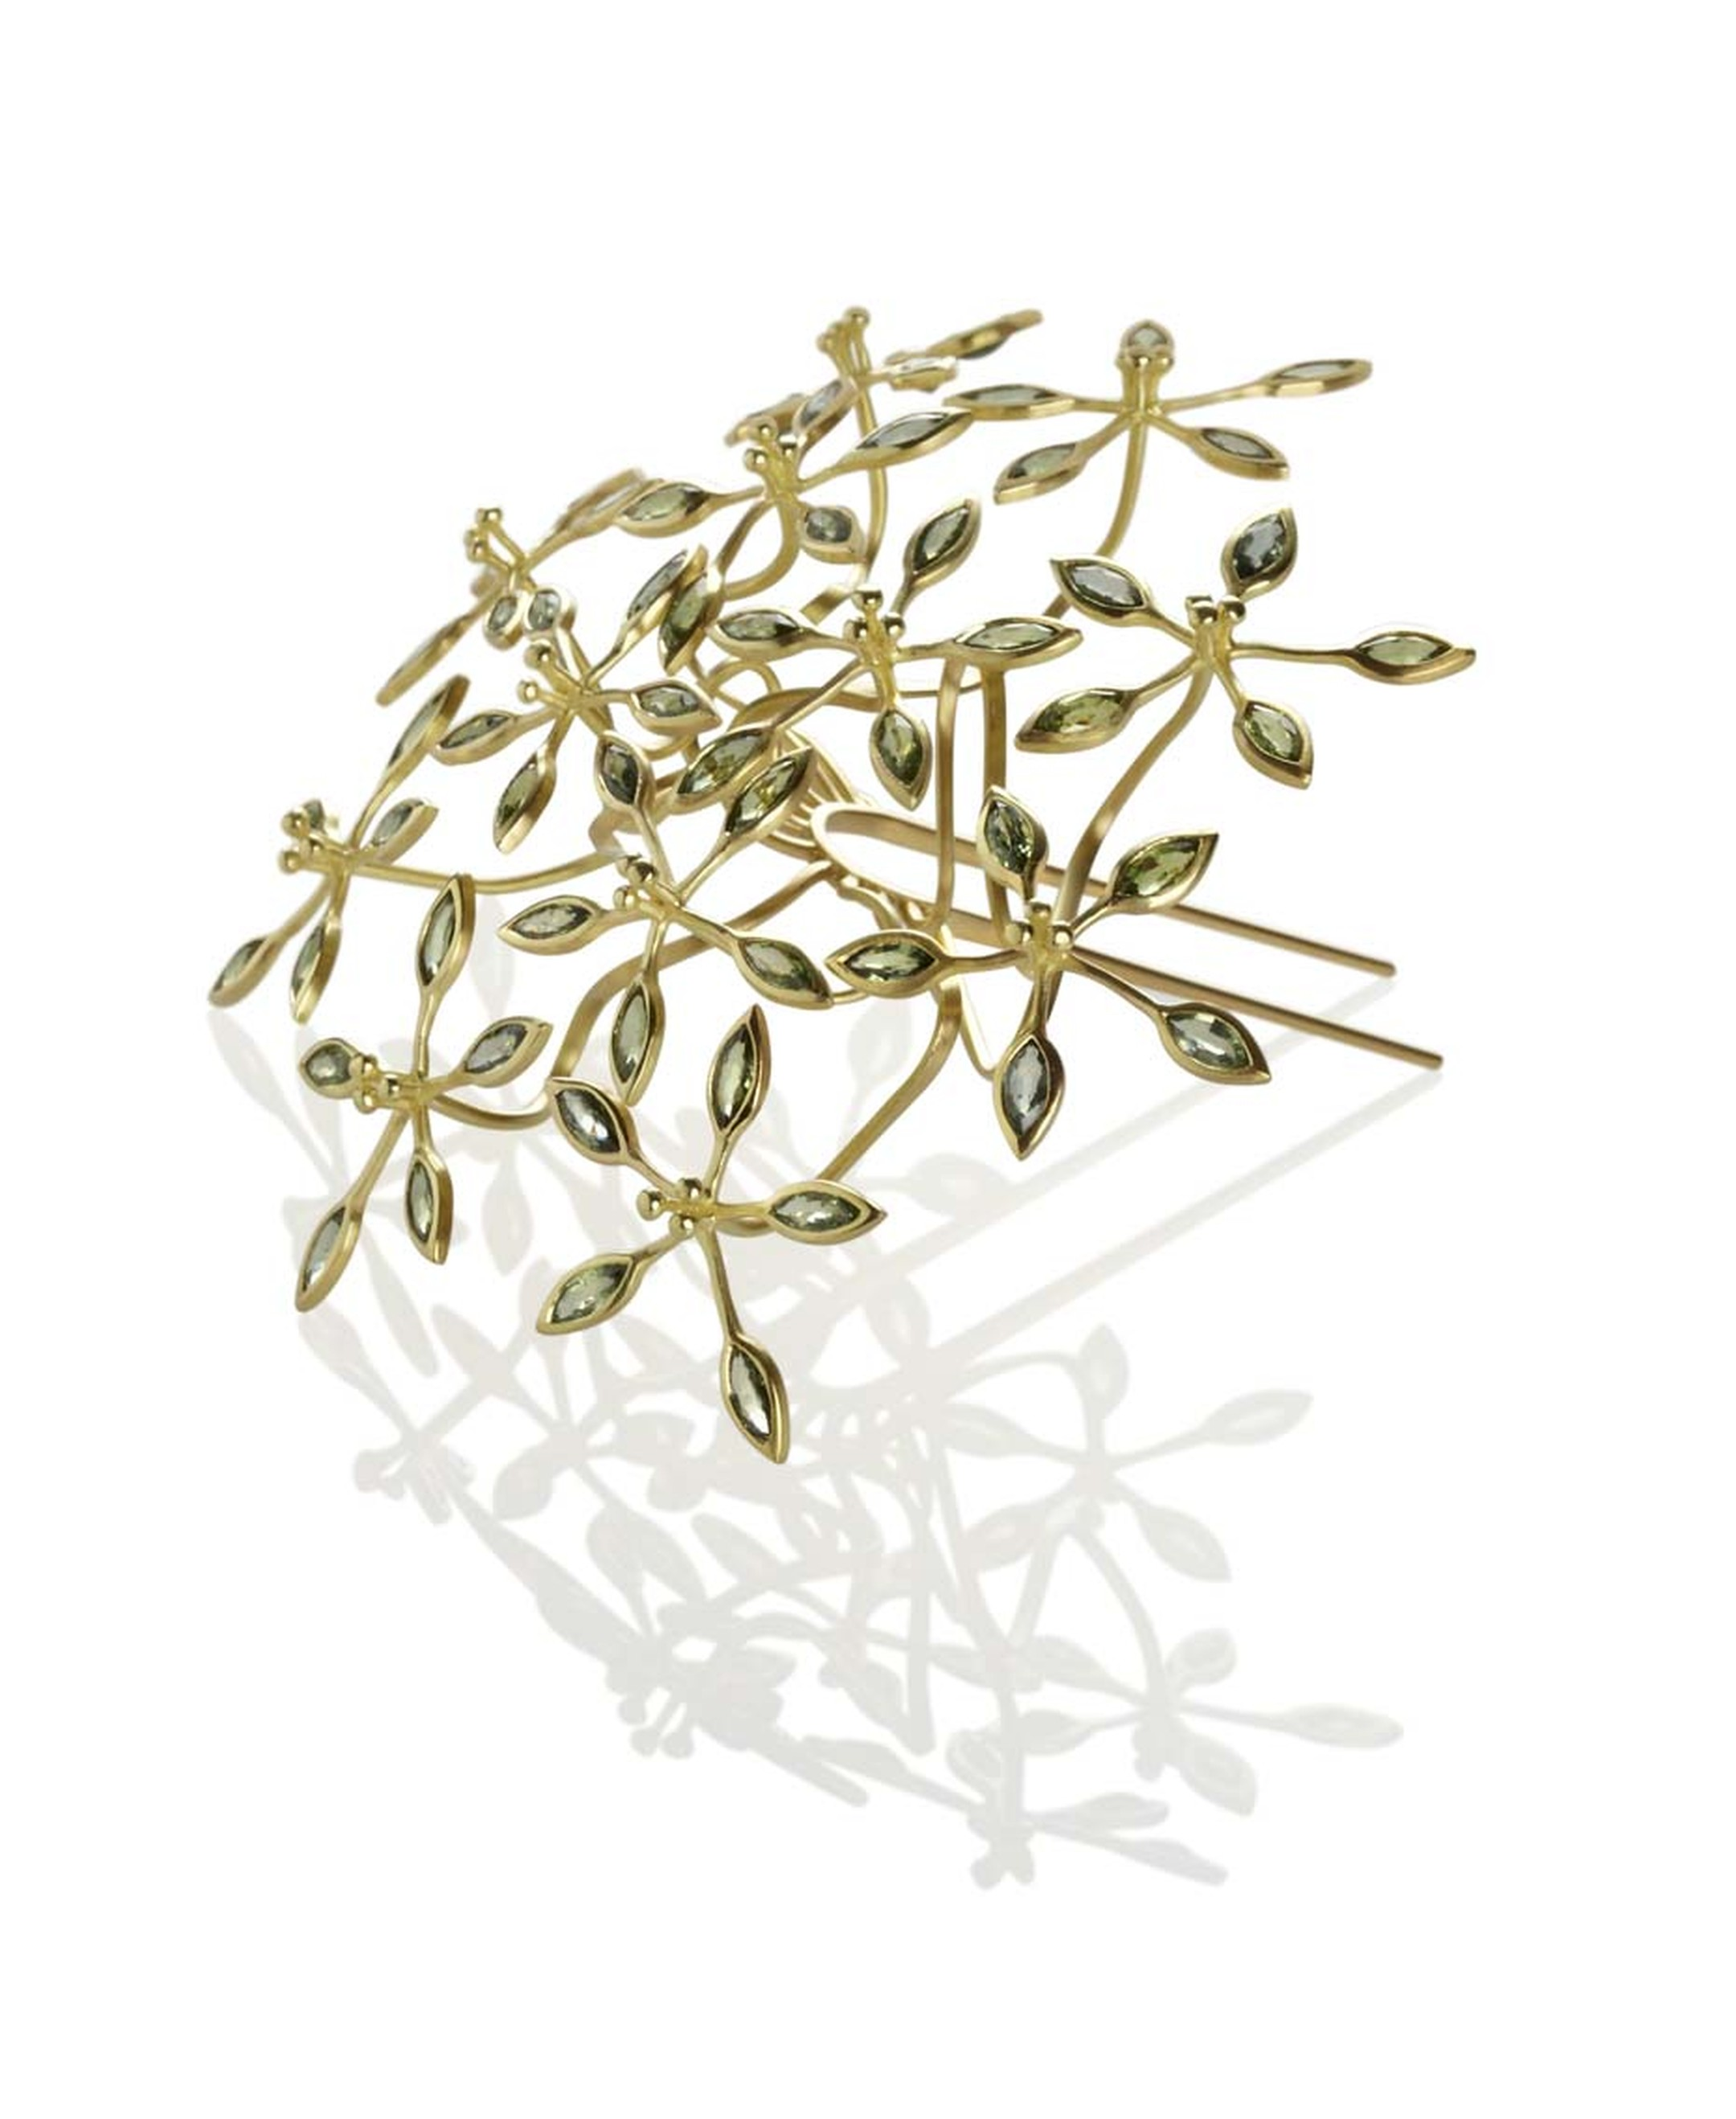 Jo Thorne Passion Flower hairpin in yellow gold set with 60 rare green sapphires (£25,000)